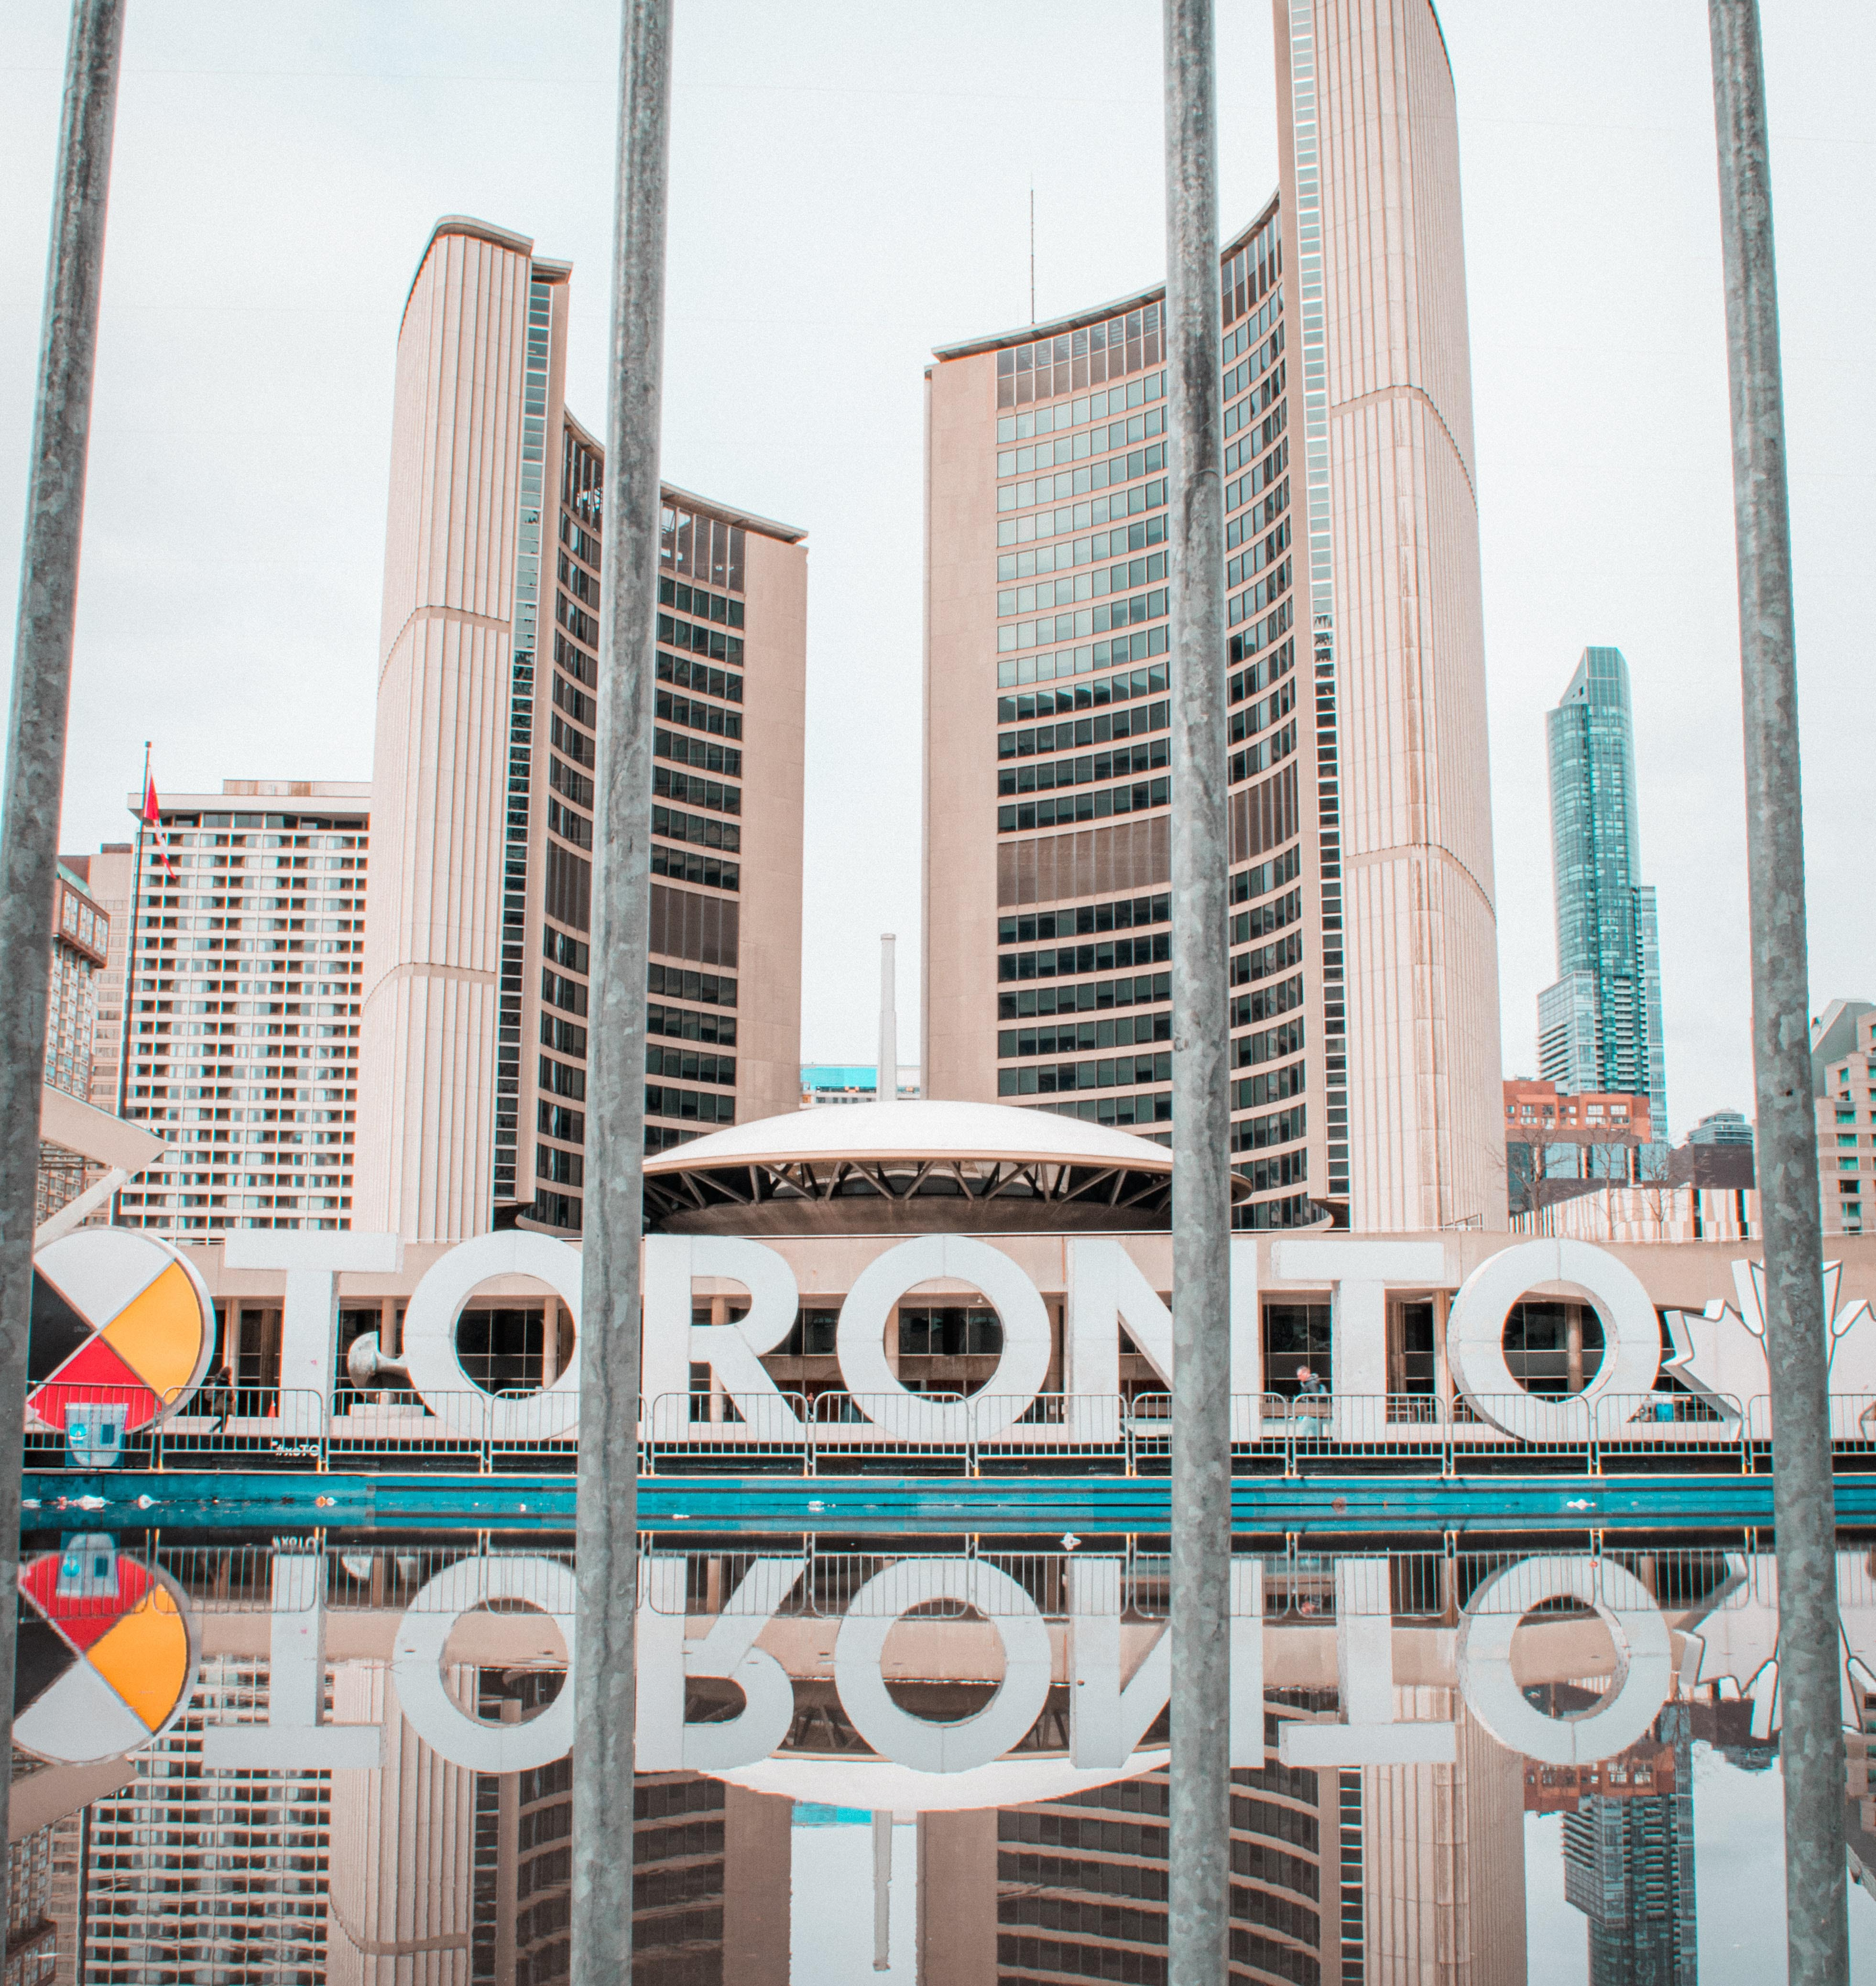 Image of the Toronto sign at Nathan Philips Square